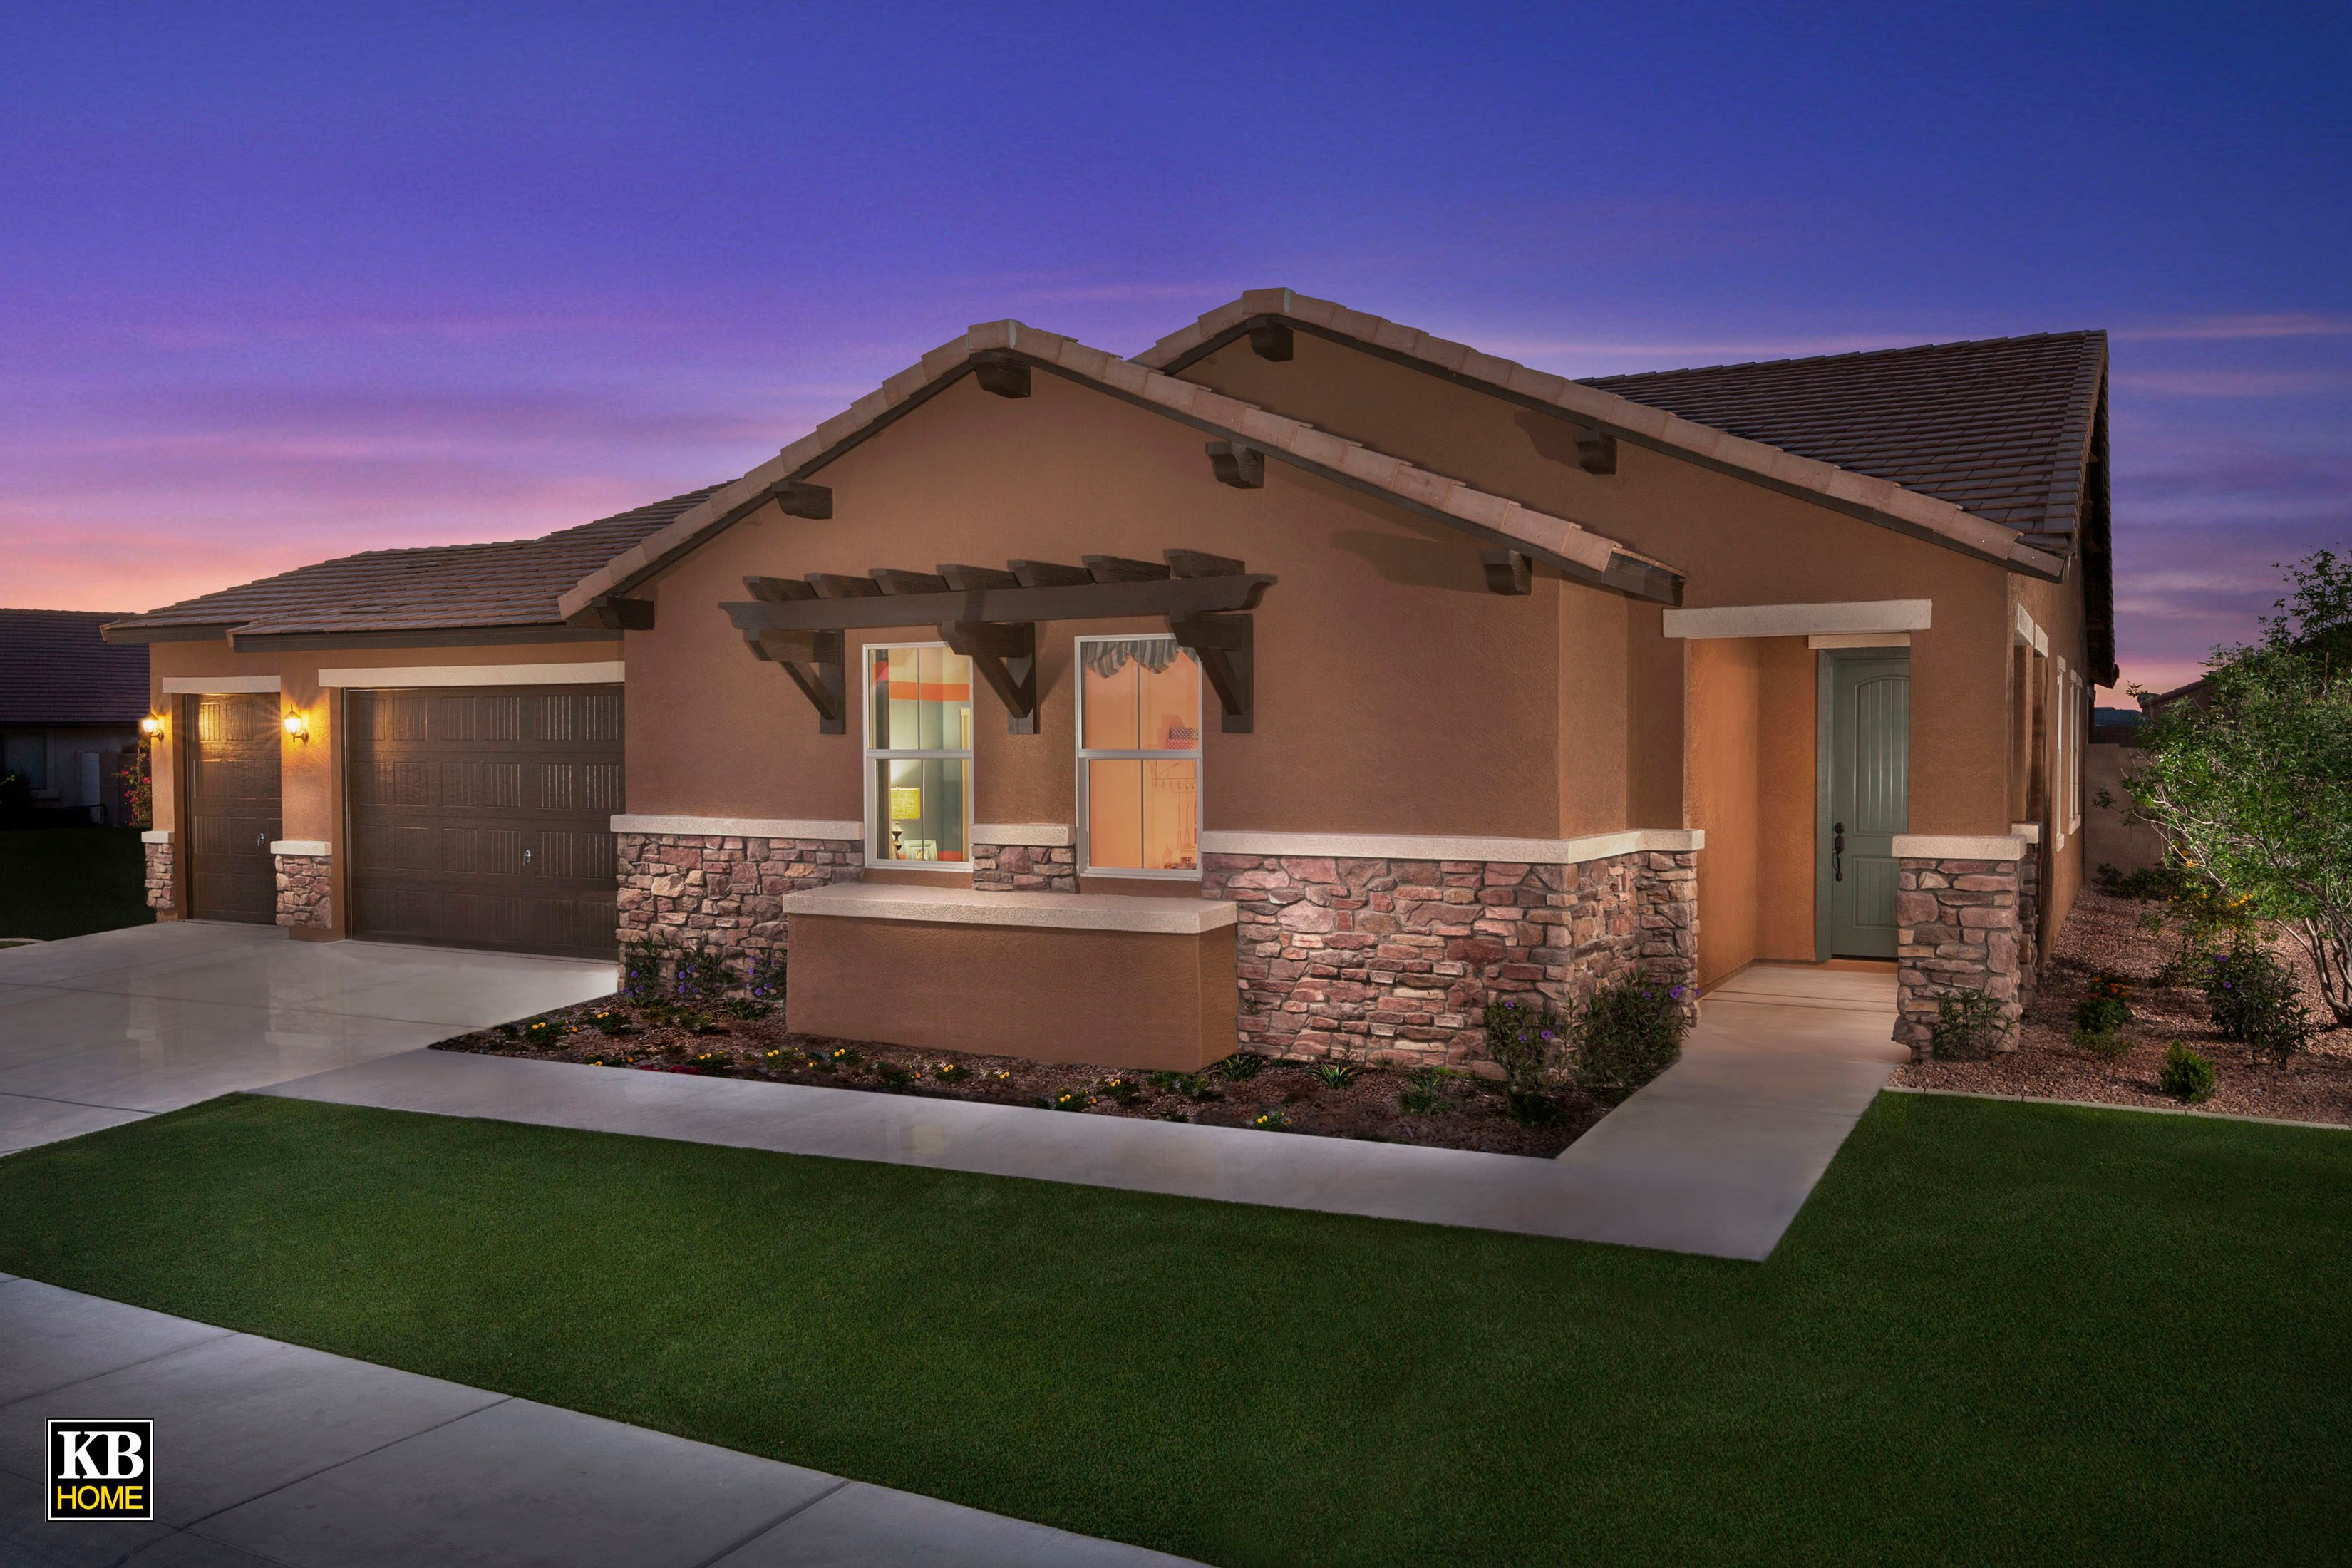 Here's the Completely New Picture Of Patio Homes for Sale the Springs Phoenix